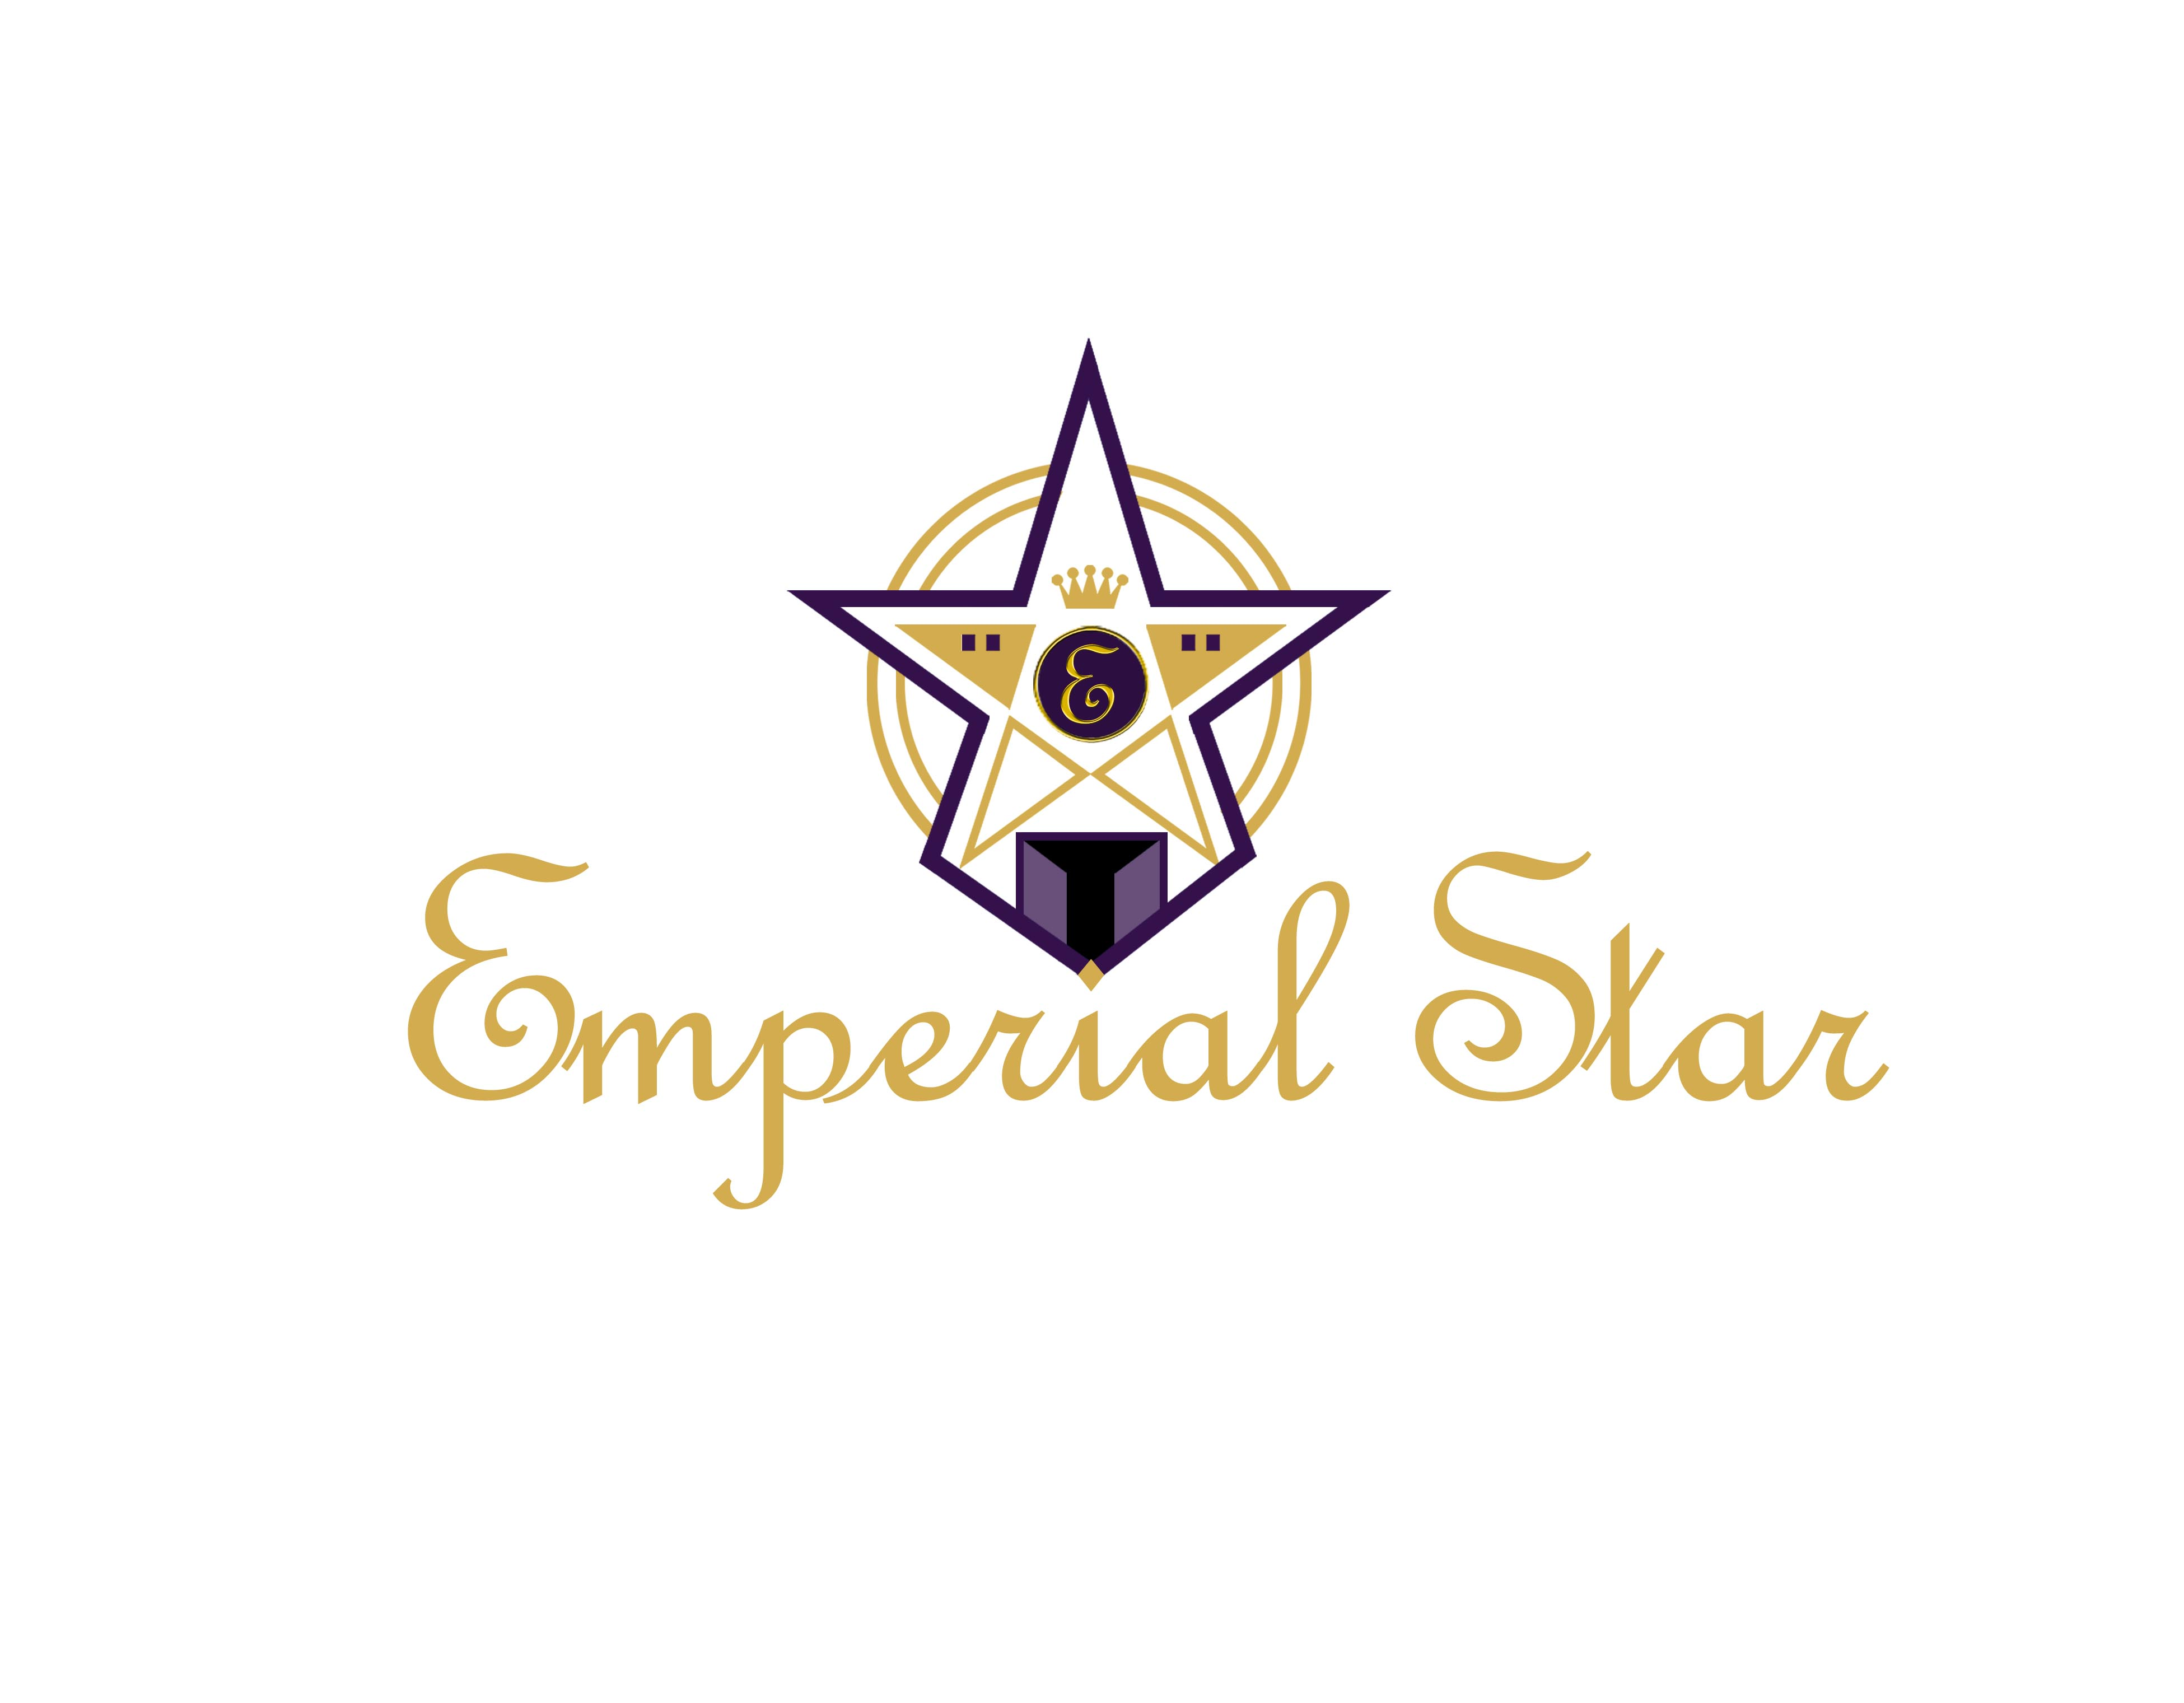 Logo Design by Cesar III Sotto - Entry No. 145 in the Logo Design Contest Emperial Star Logo Design.